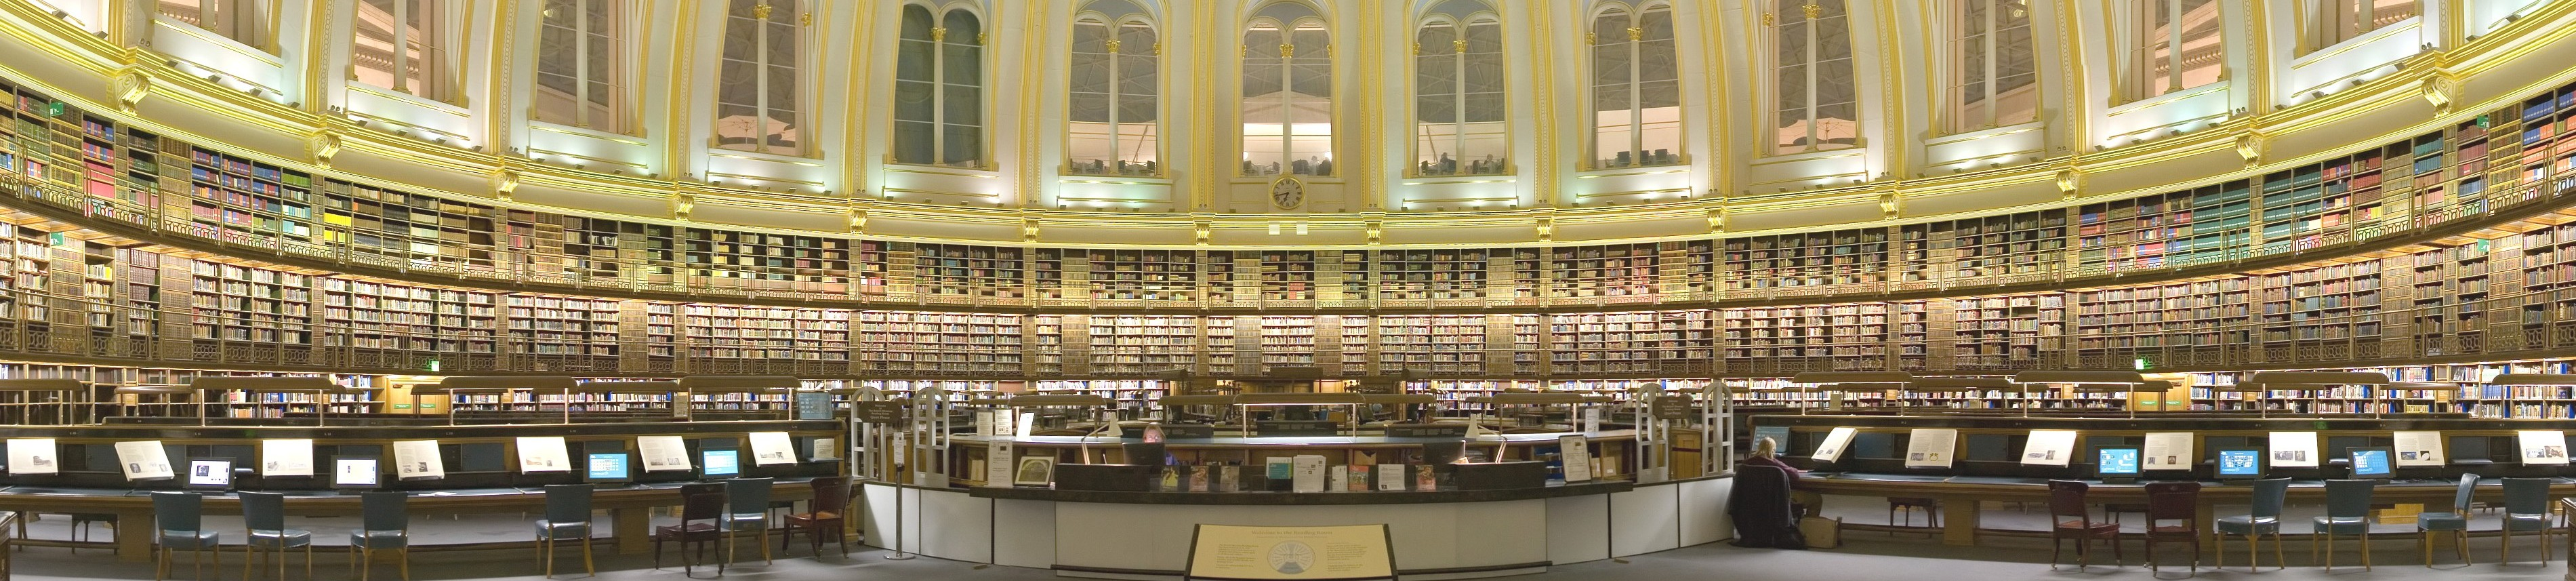 Information Science: Conceptions & Models. The British Museum Reading Room, London. This building used to be the main reading room of the British Library; now it is itself a museum exhibit. Source: Wikipedia.